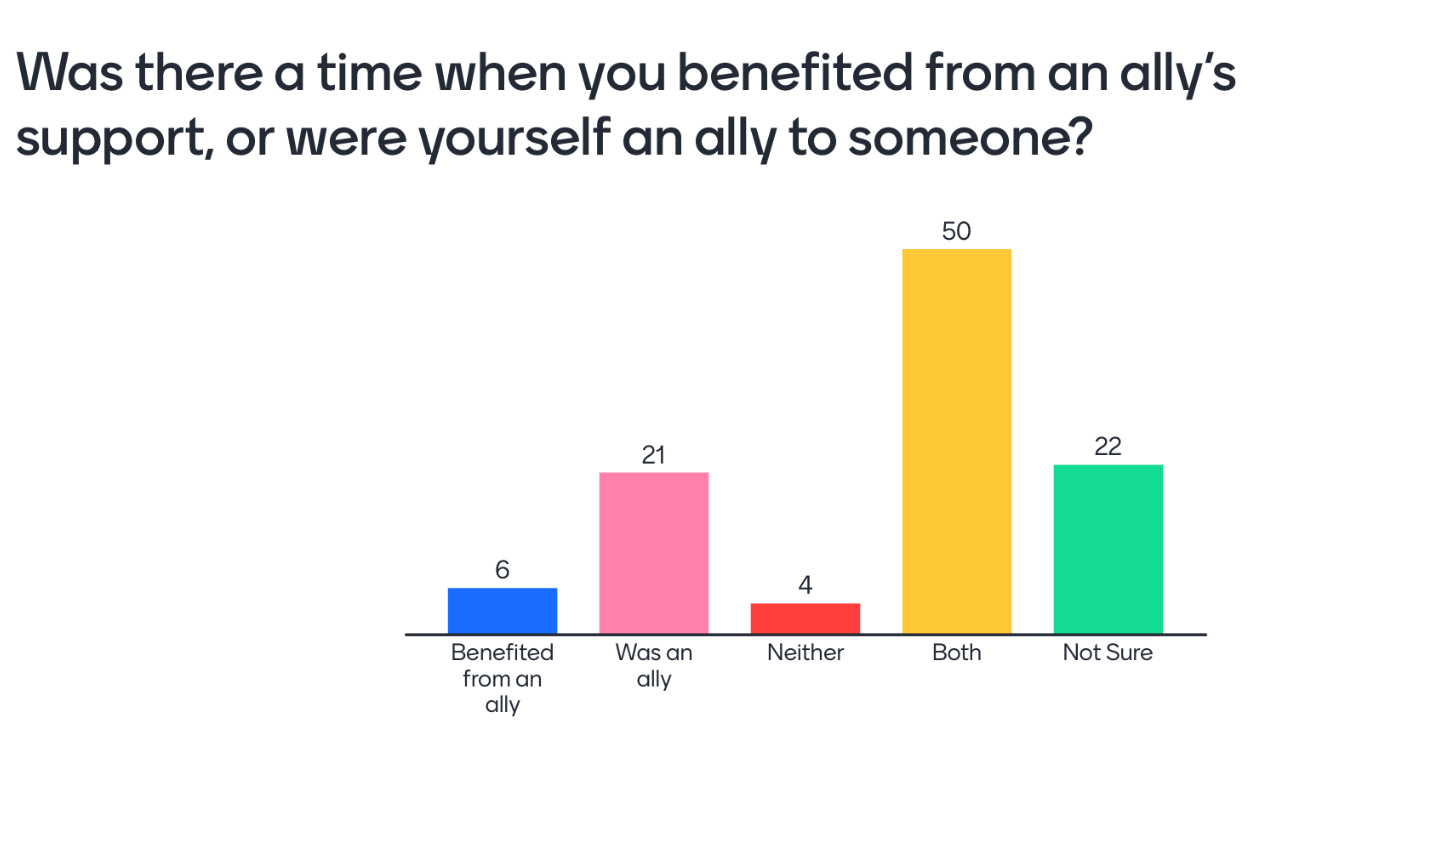 """Bar graph titled """"Was there a time when you benefited from an ally's support, or were yourself an ally to someone?"""" There bars showing five possible answers. 6 people responded """"Benefited from an ally"""", 21 people responded """"Was an ally"""", 4 responded """"Neither"""", 50 responded """"Both"""", and finally 22 replied """"Not sure"""""""